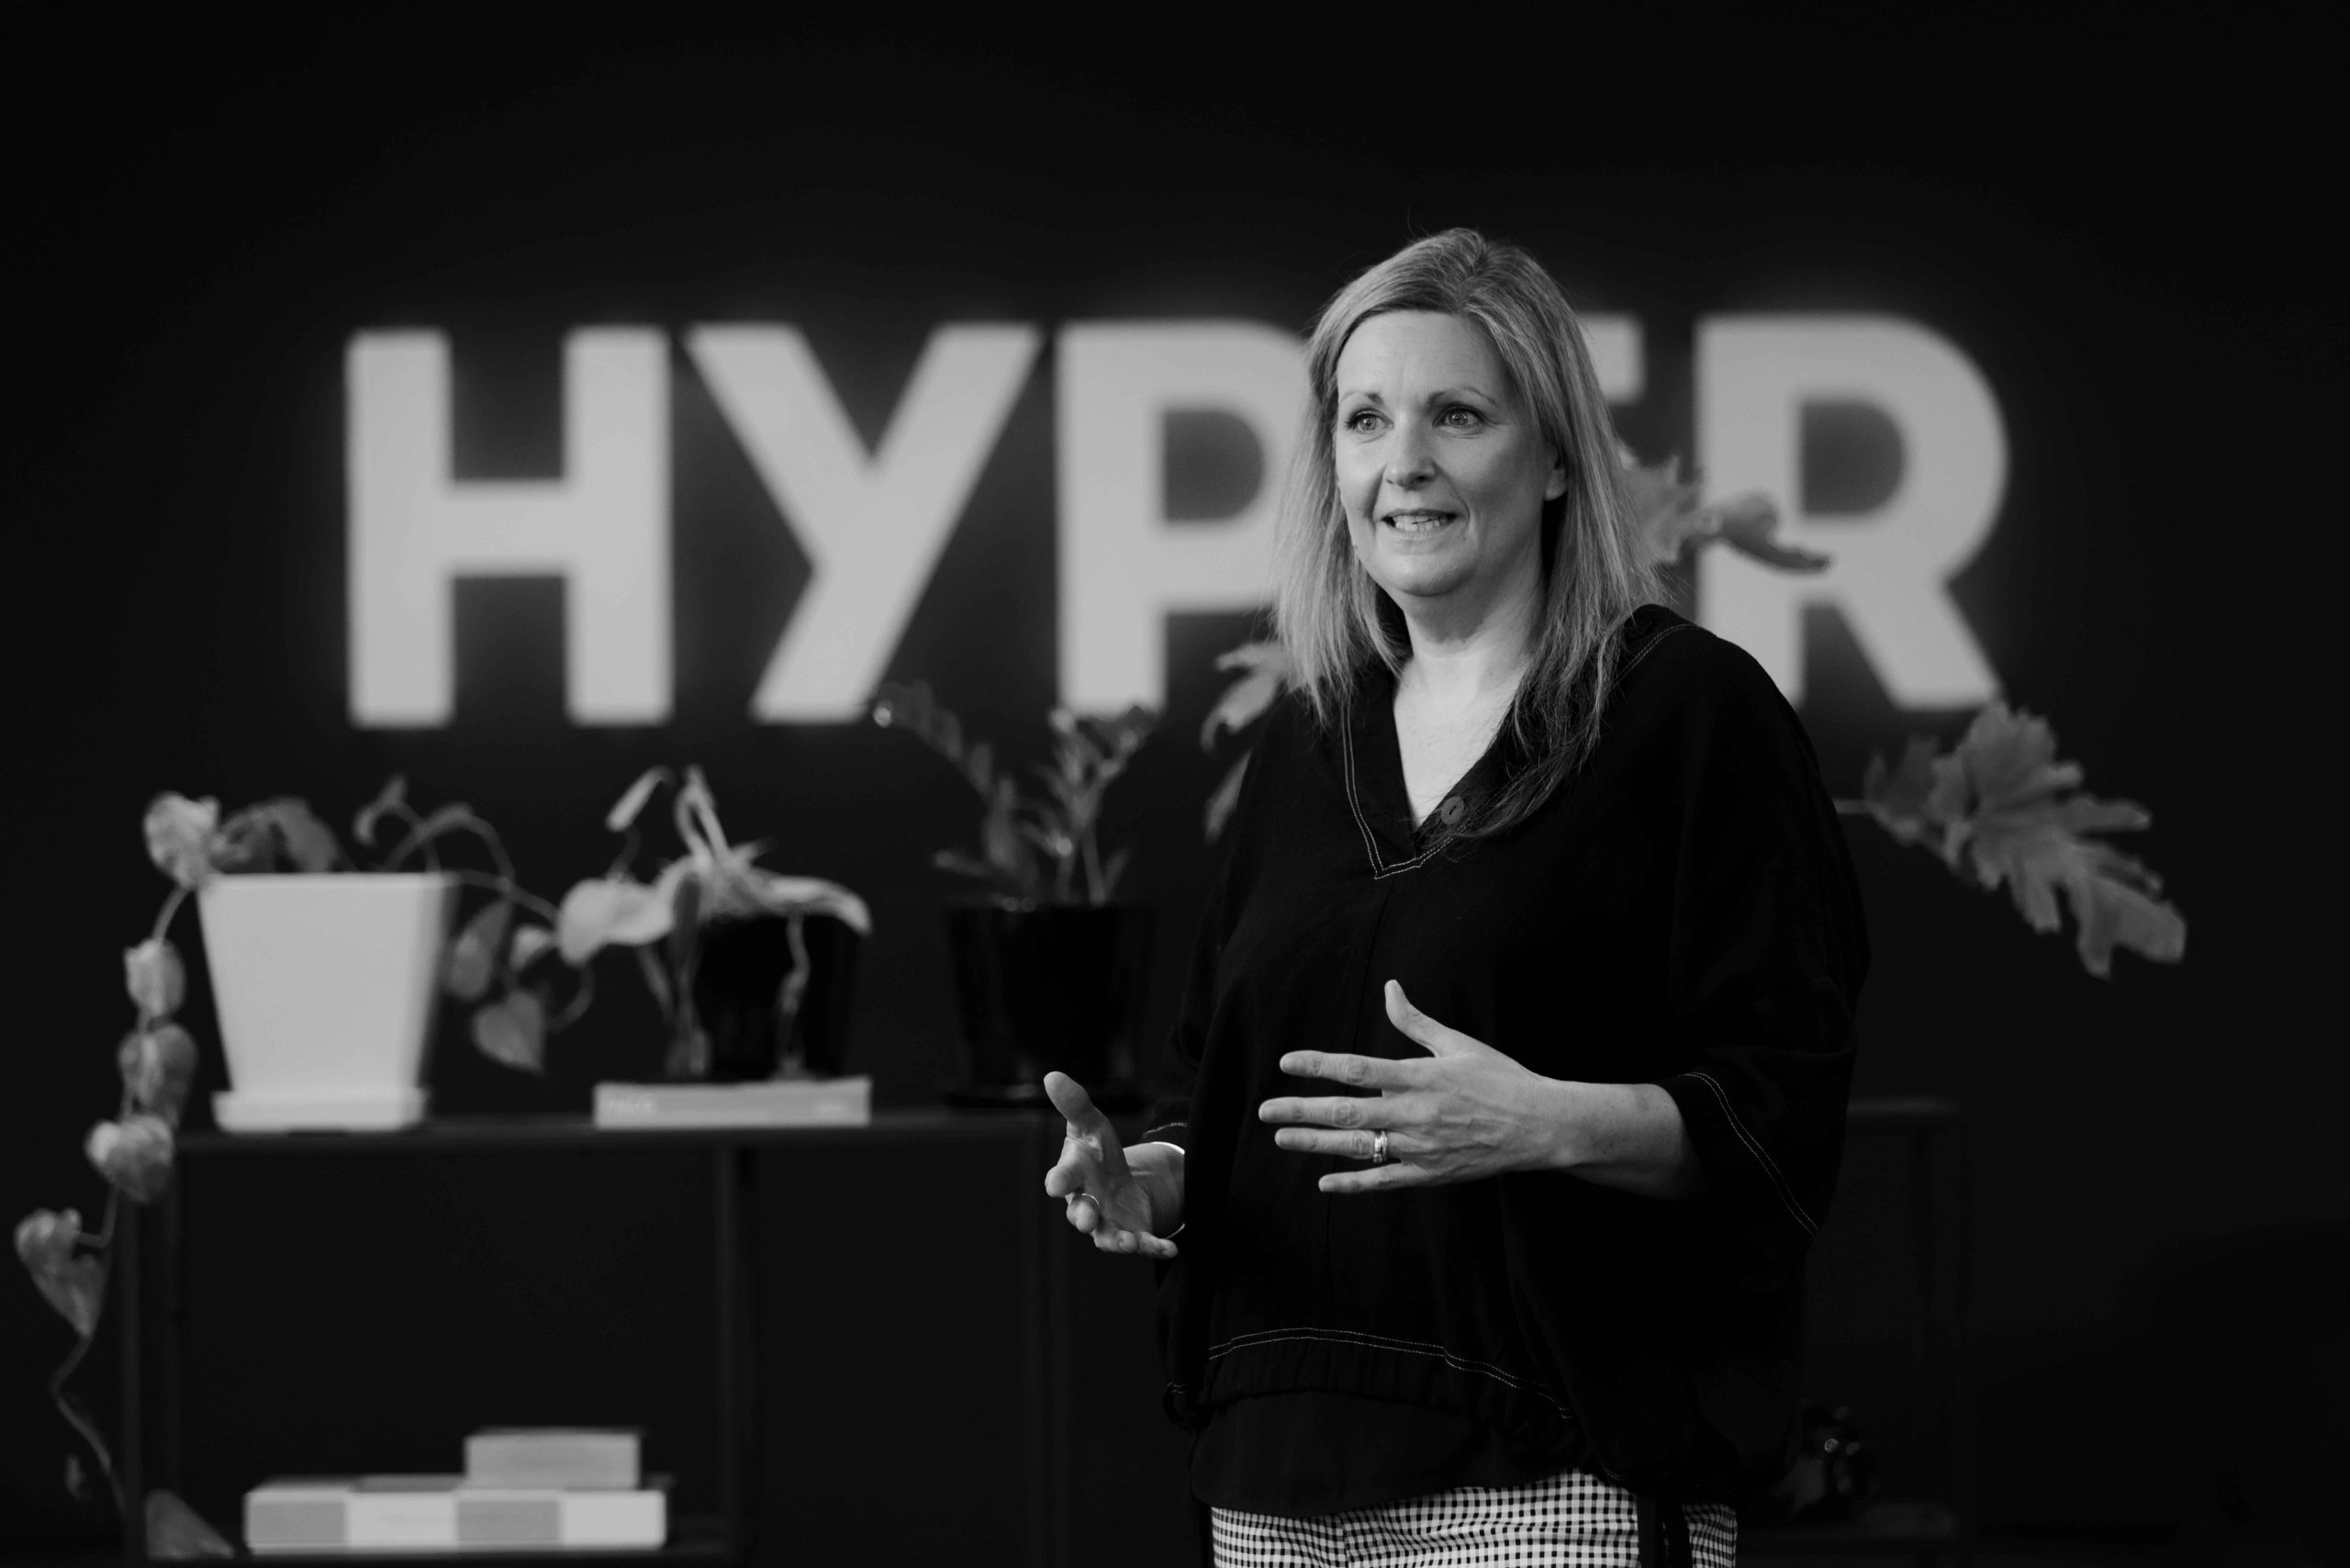 HYPER Ramps up Retail Marketing with New Agency Lead